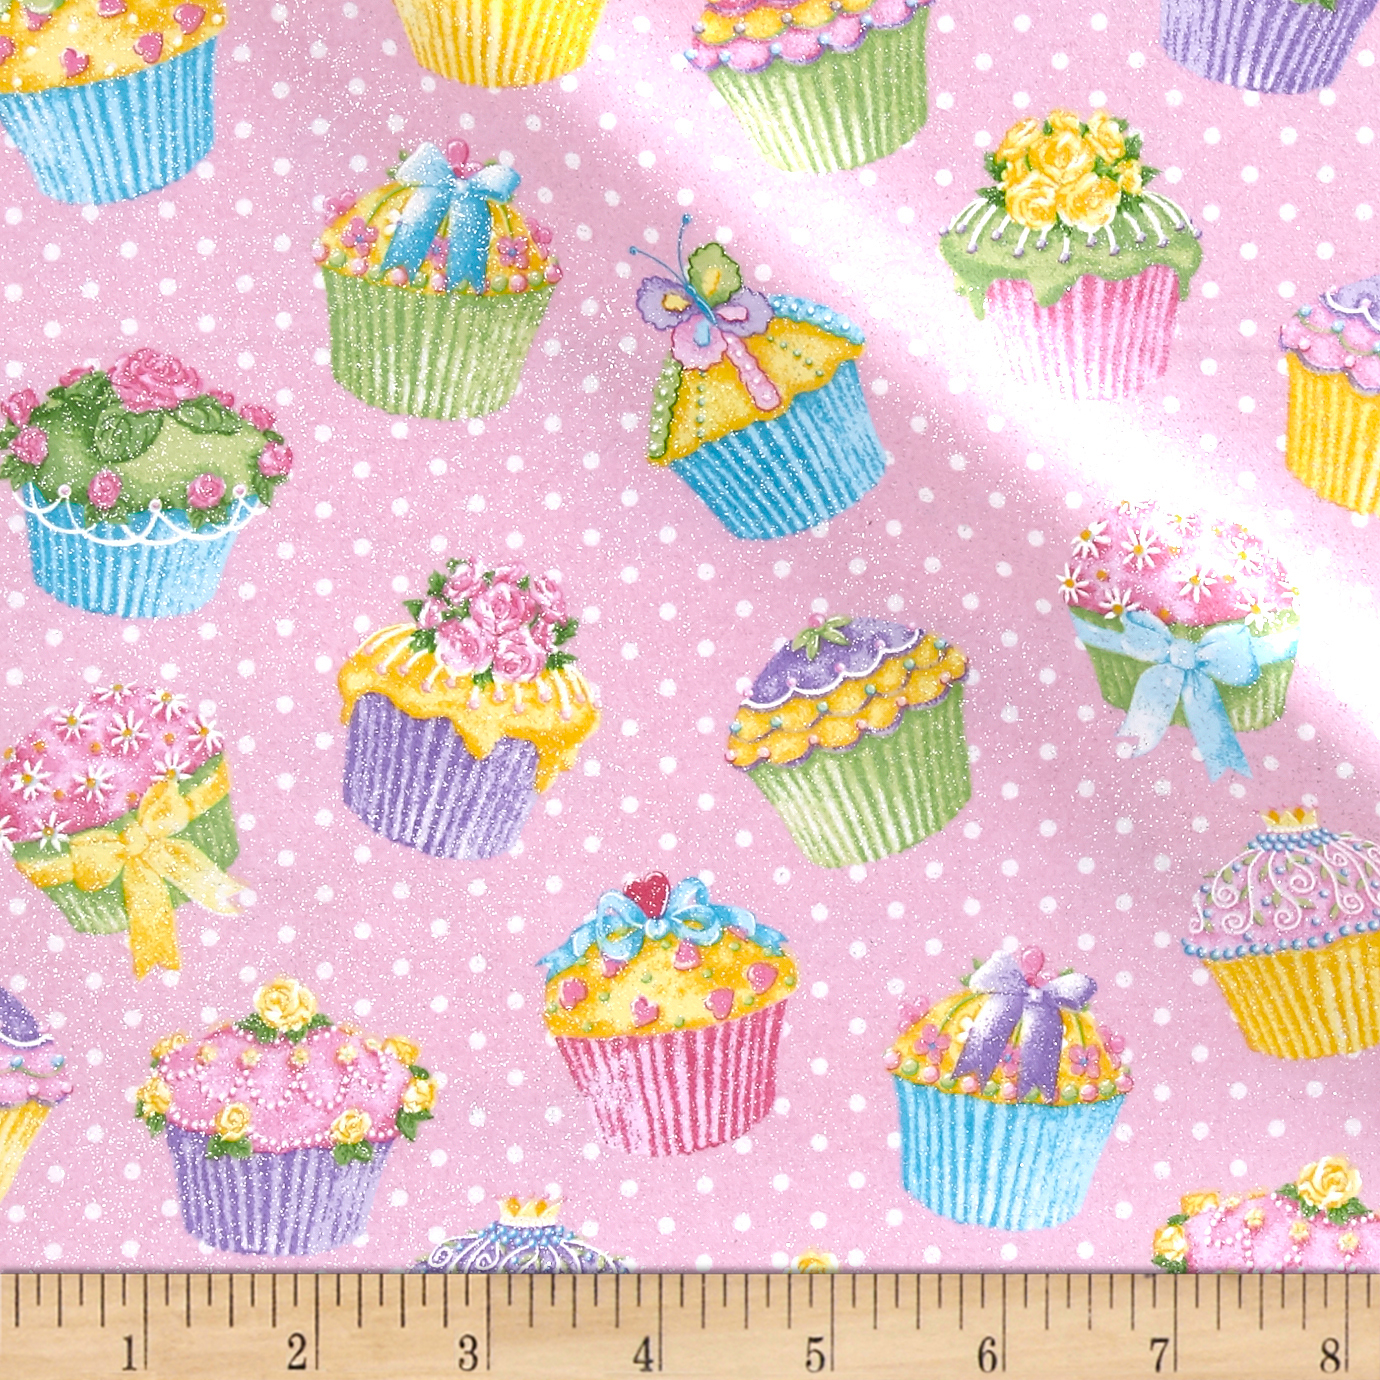 Pizzaz Flannel Glitter Cupcakes Pink Fabric by Fabric Traditions in USA